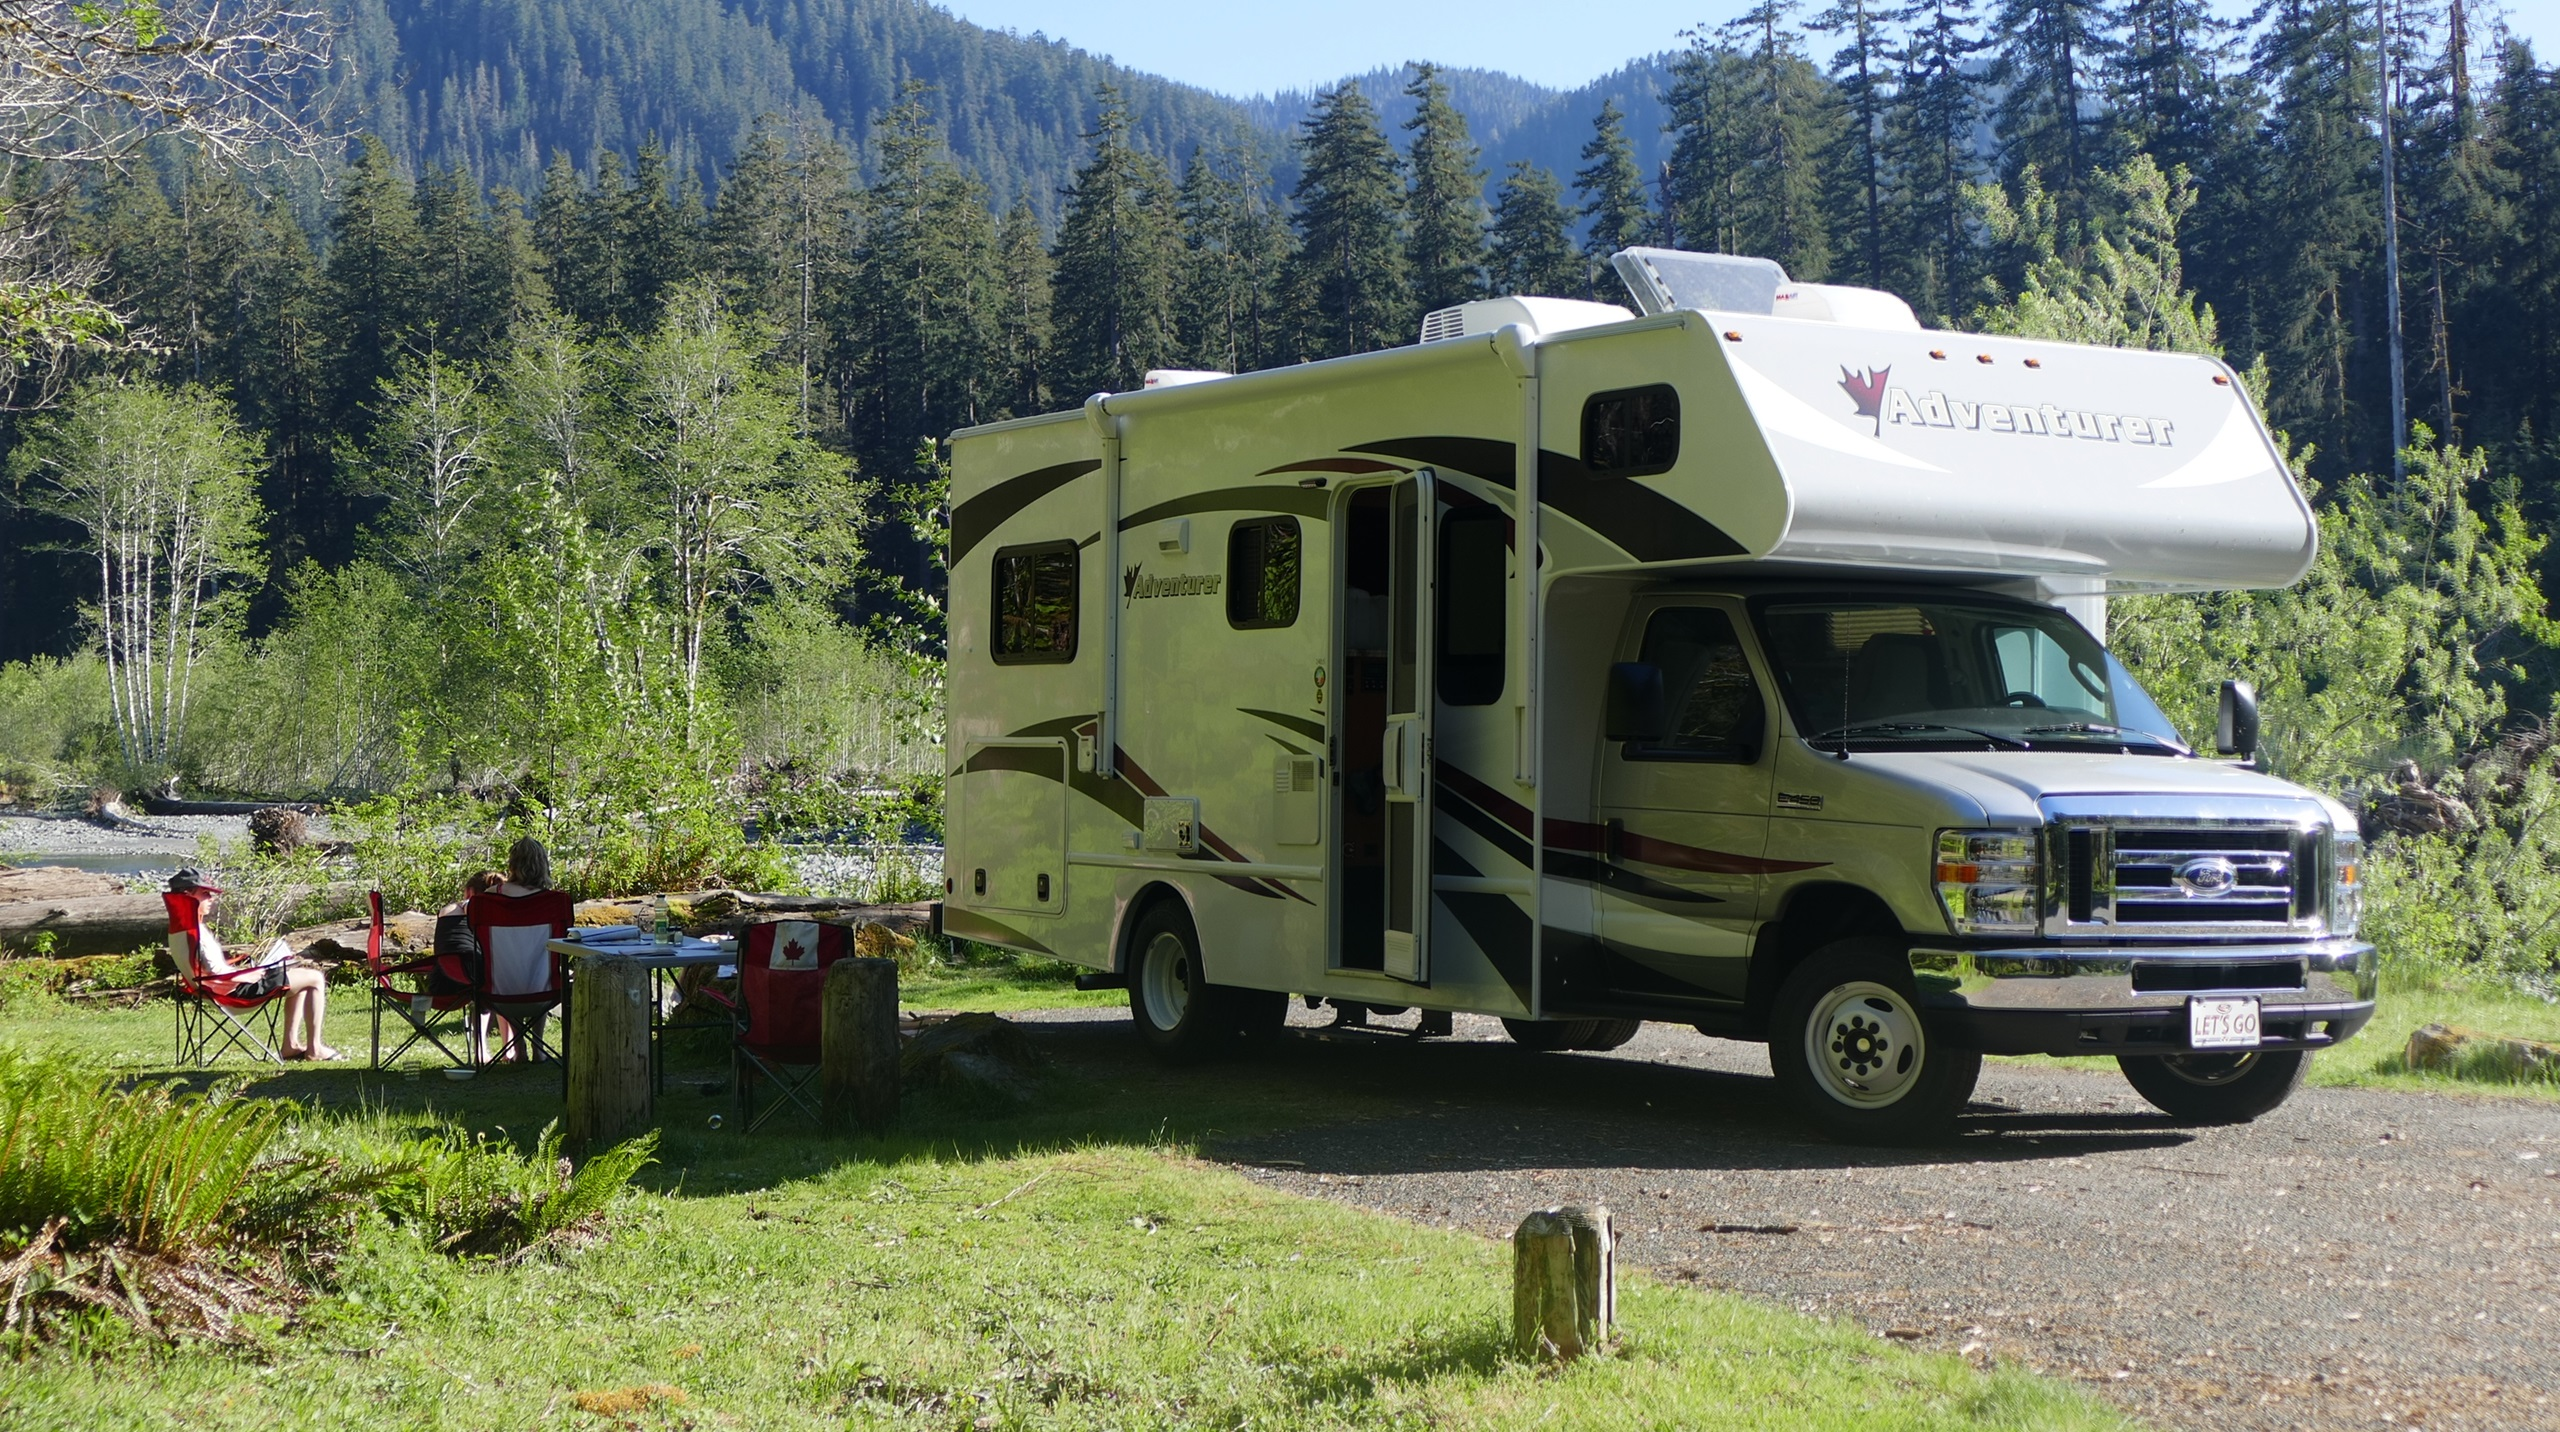 Stad water hook up RV